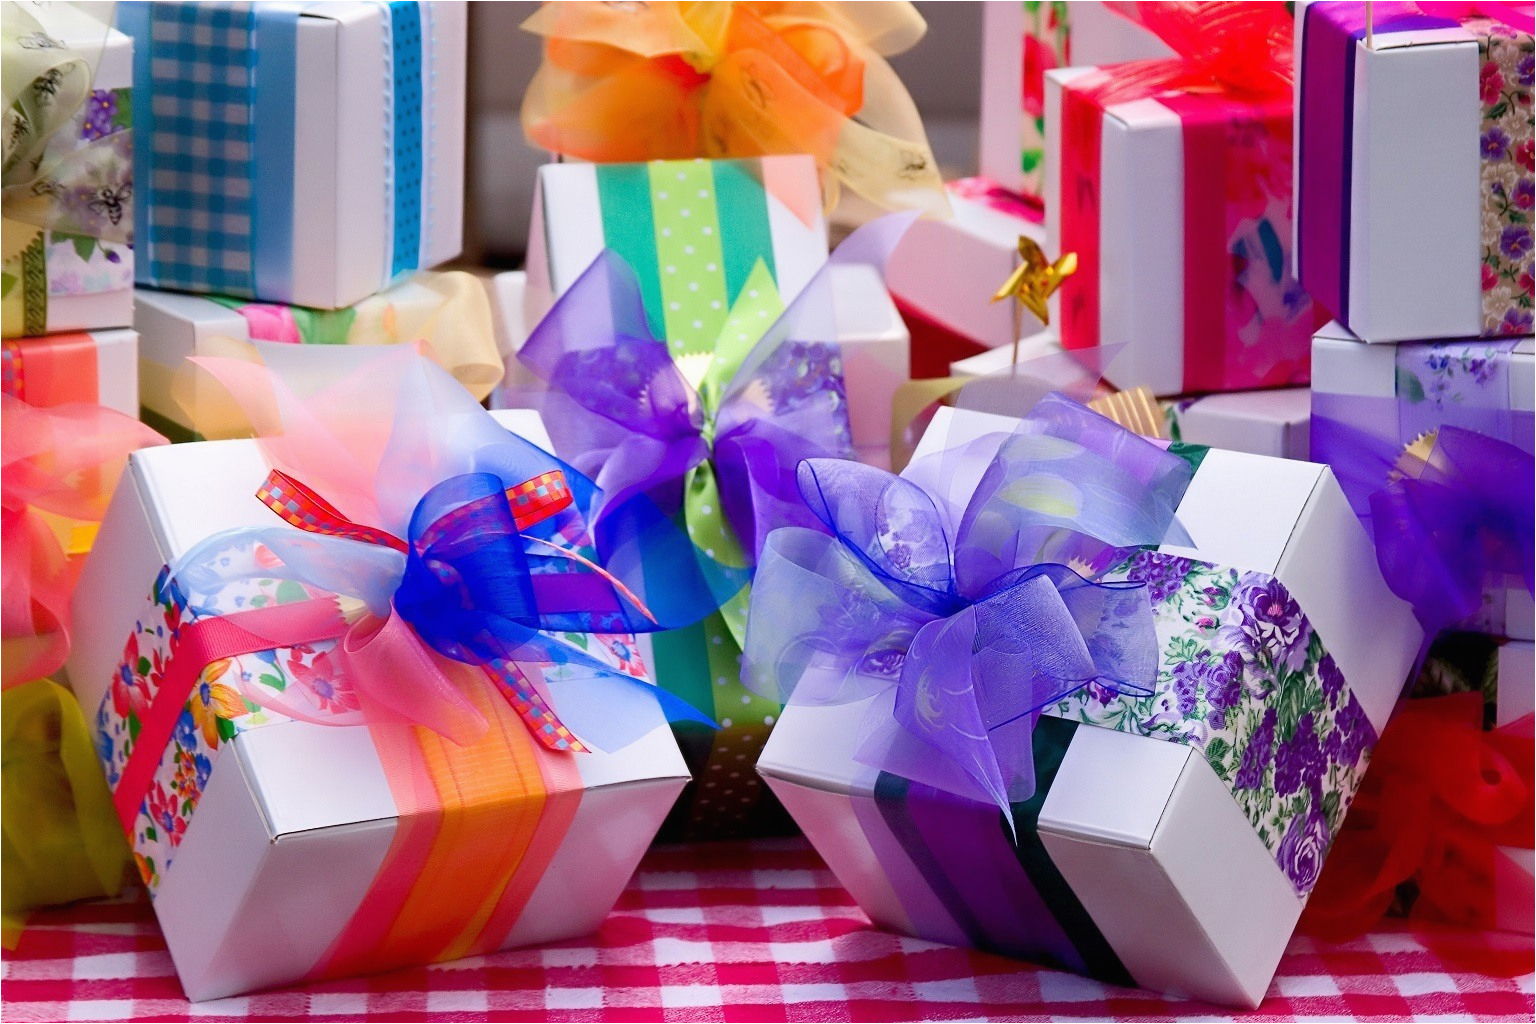 7 unique birthday gifts ideas to win your soul mate s